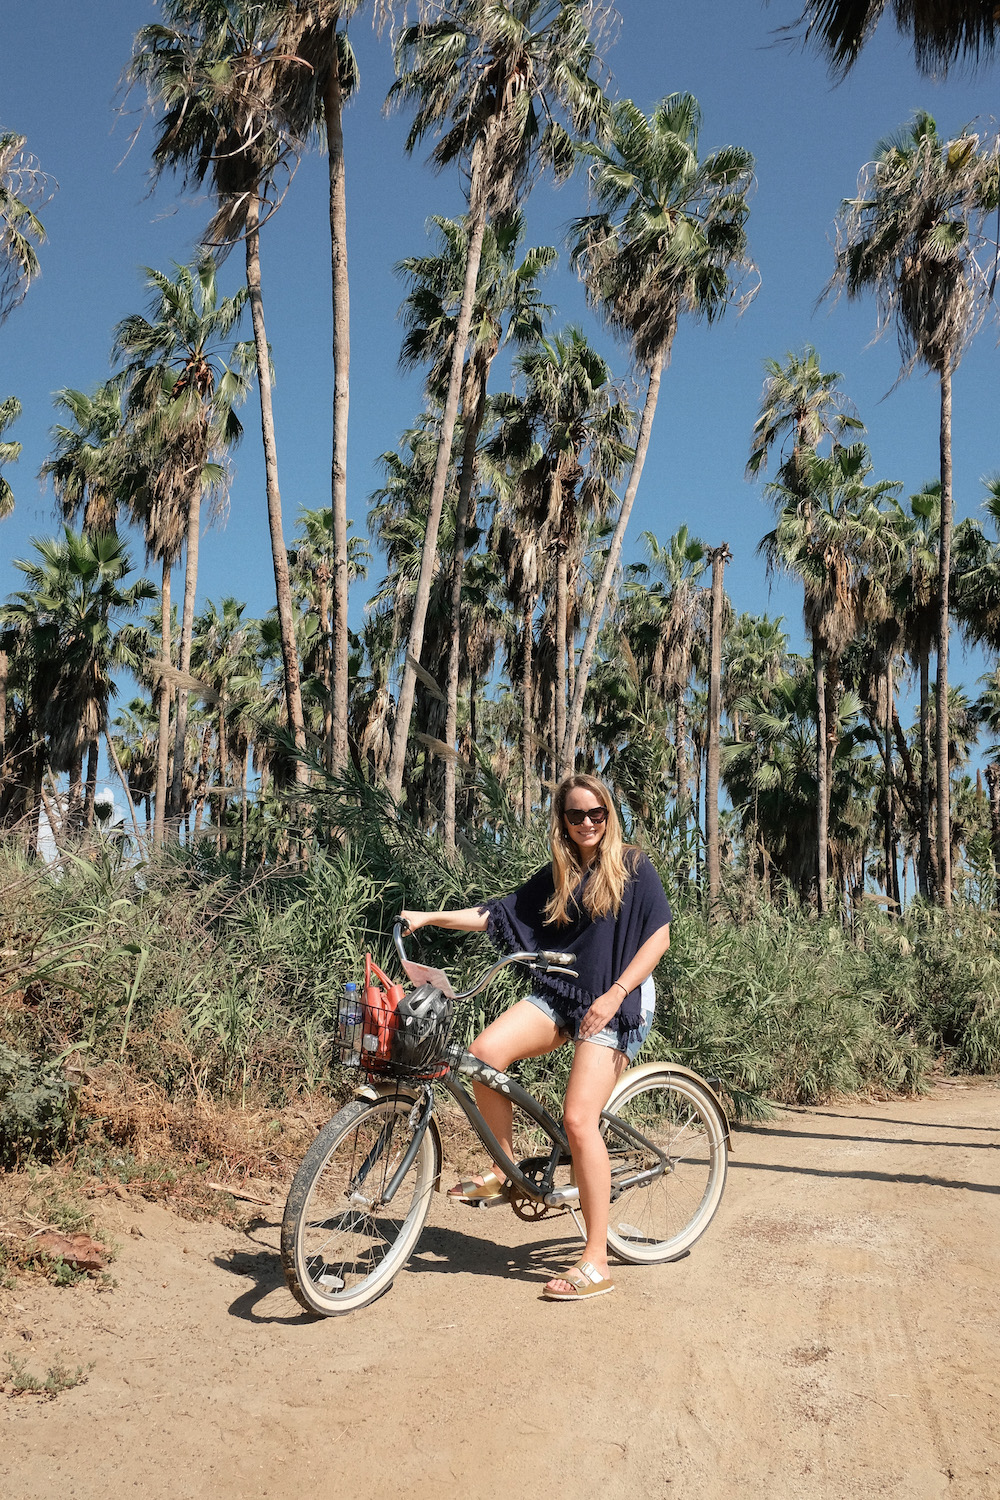 Los Cabos Mexico Travel Diary | Grace Atwood, The Stripe | El Ganzo Hotel Bike Riding to the Beach Club